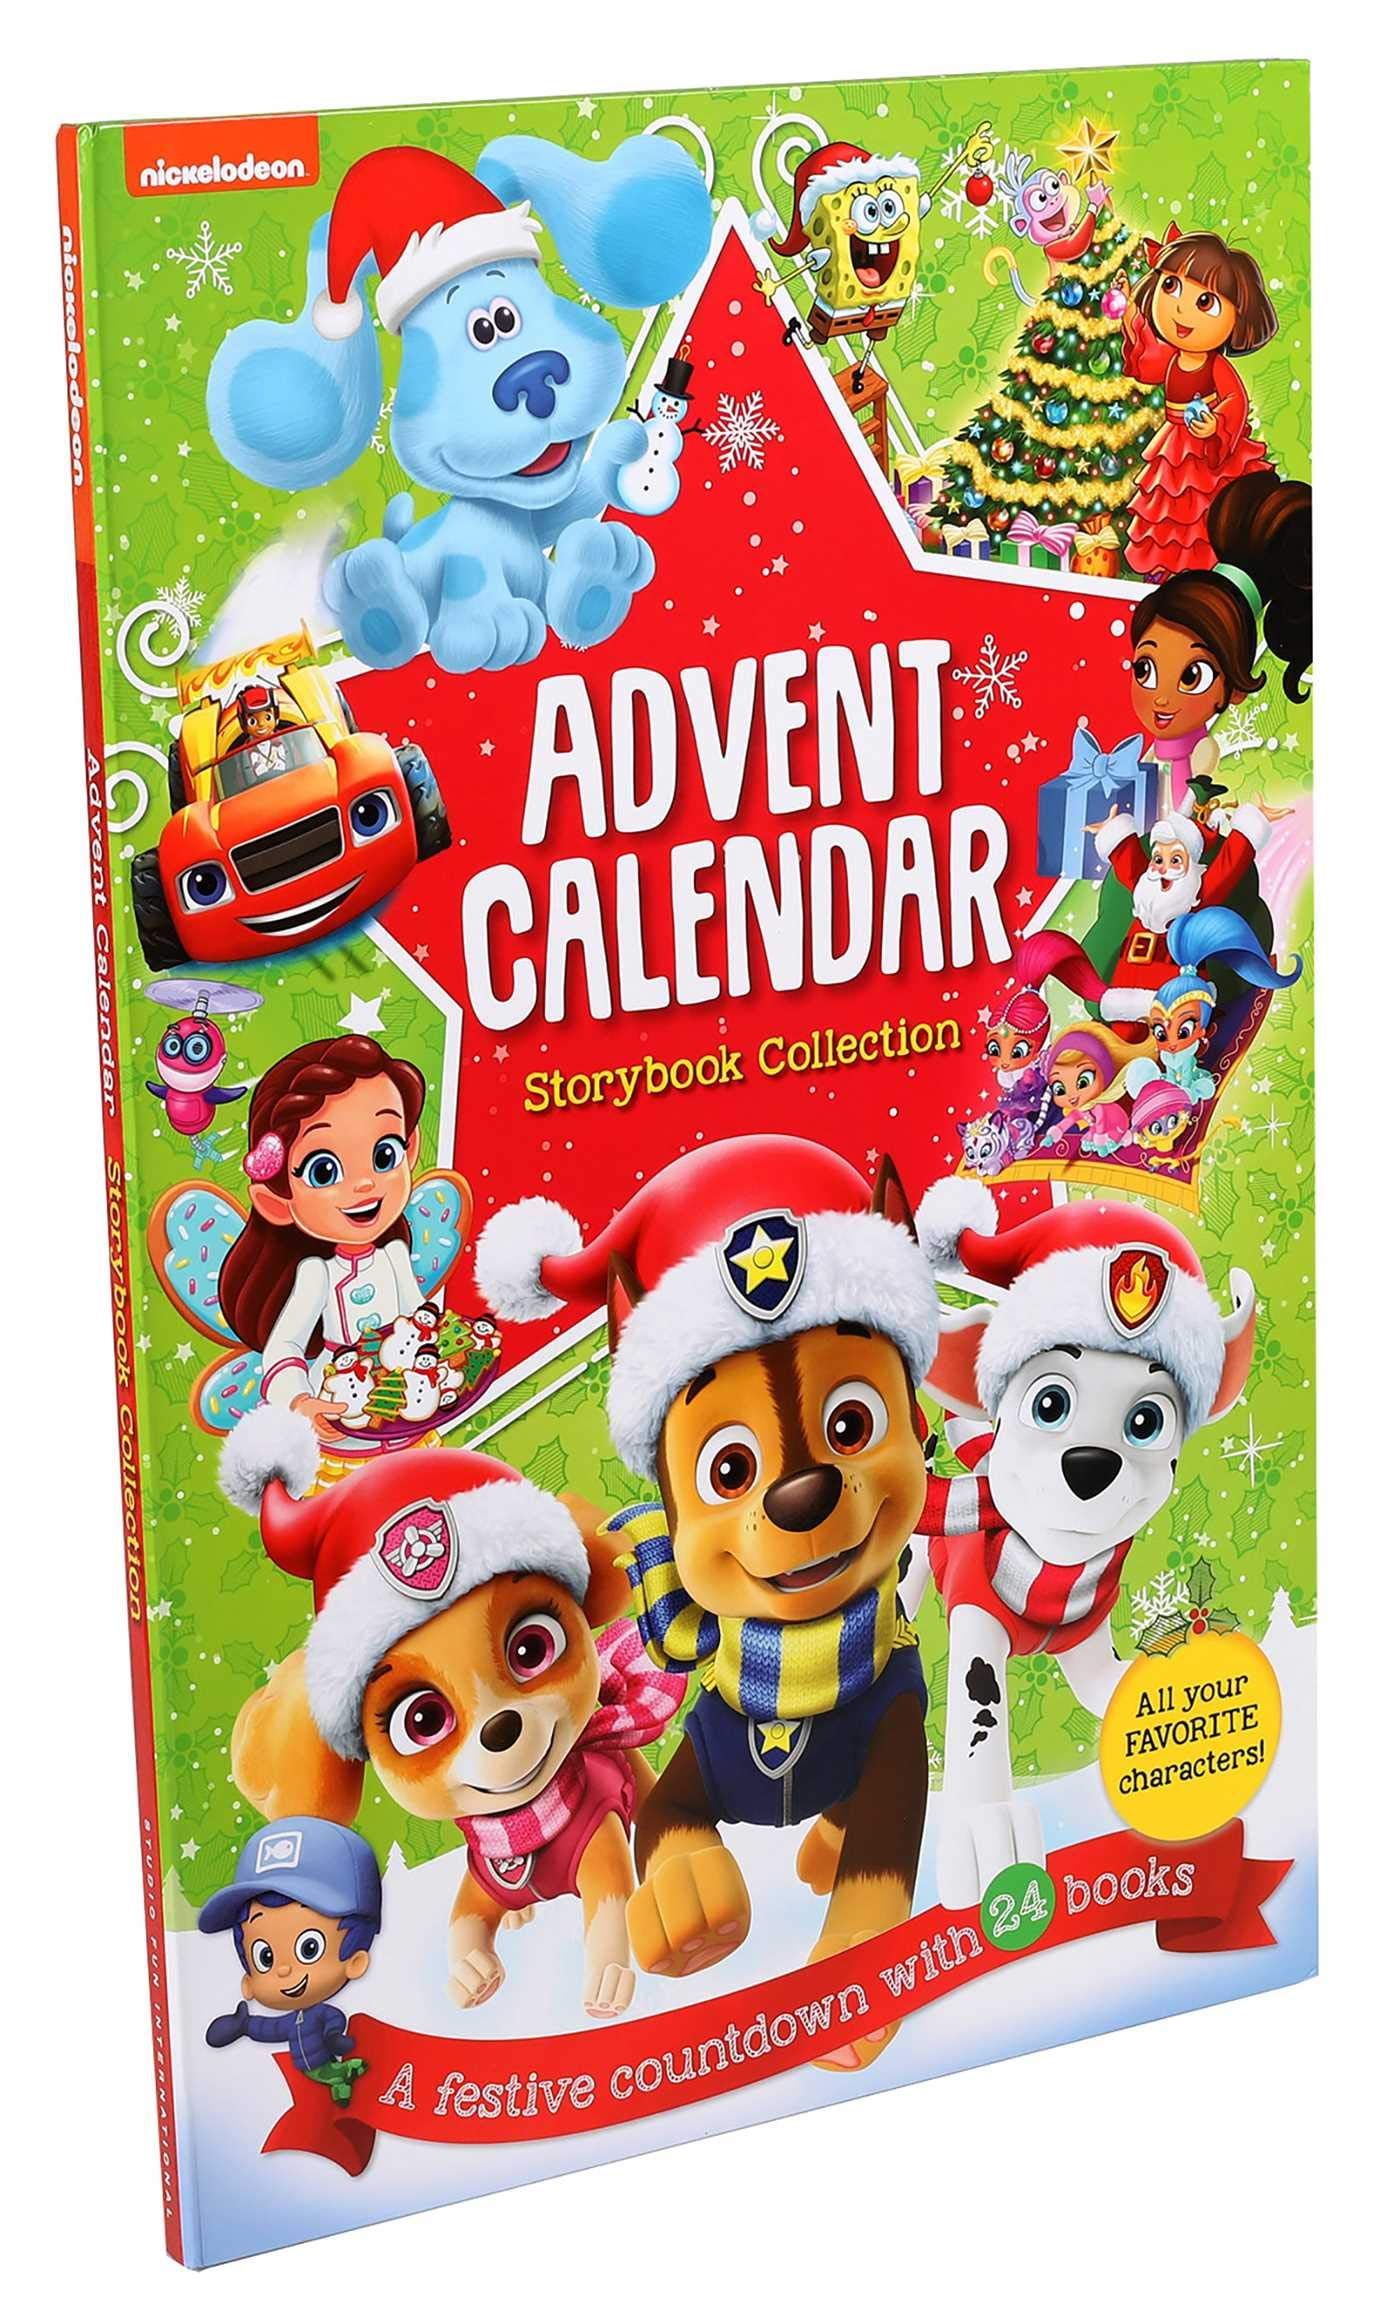 Nickelodeon Christmas Cartoon Countdown 2020 Nickelodeon: Storybook Collection Advent Calendar: Editors of